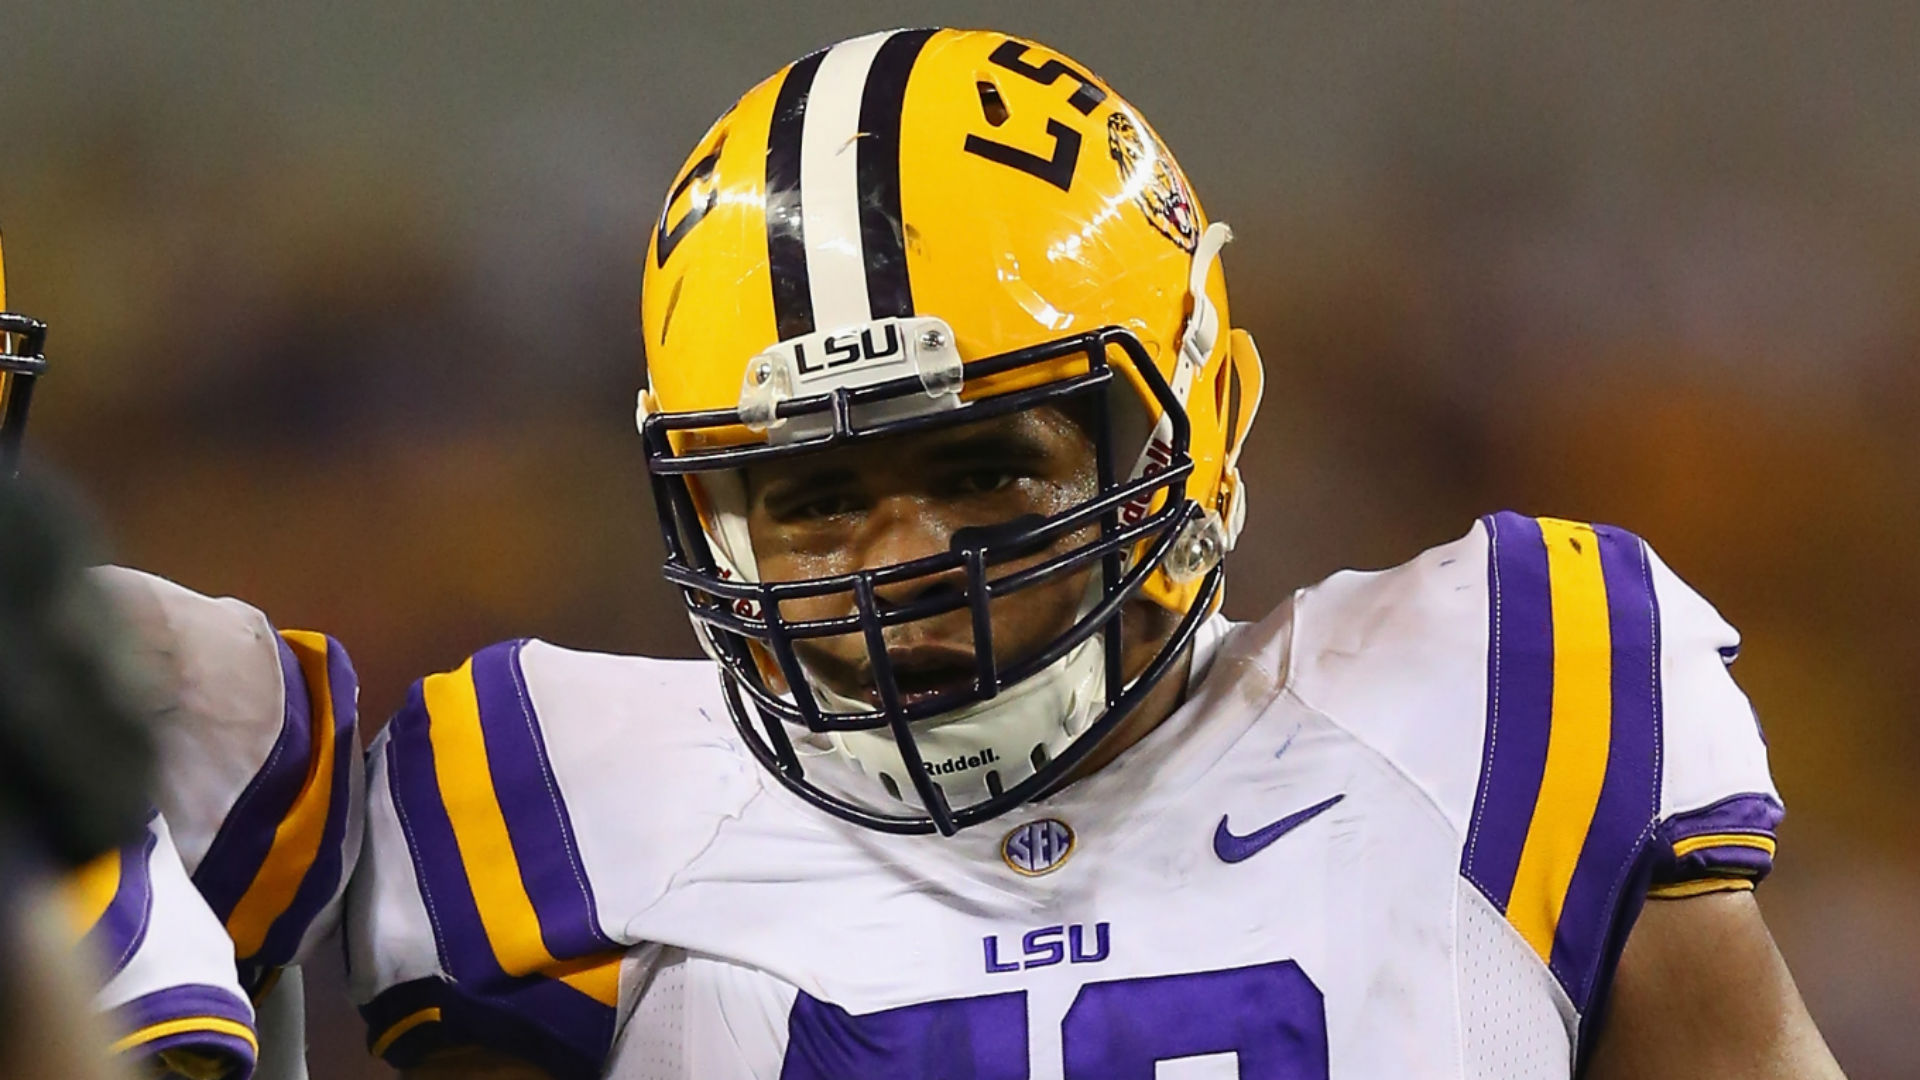 La'el Collins dines with Bills coach Rex Ryan after meeting with homicide detectives